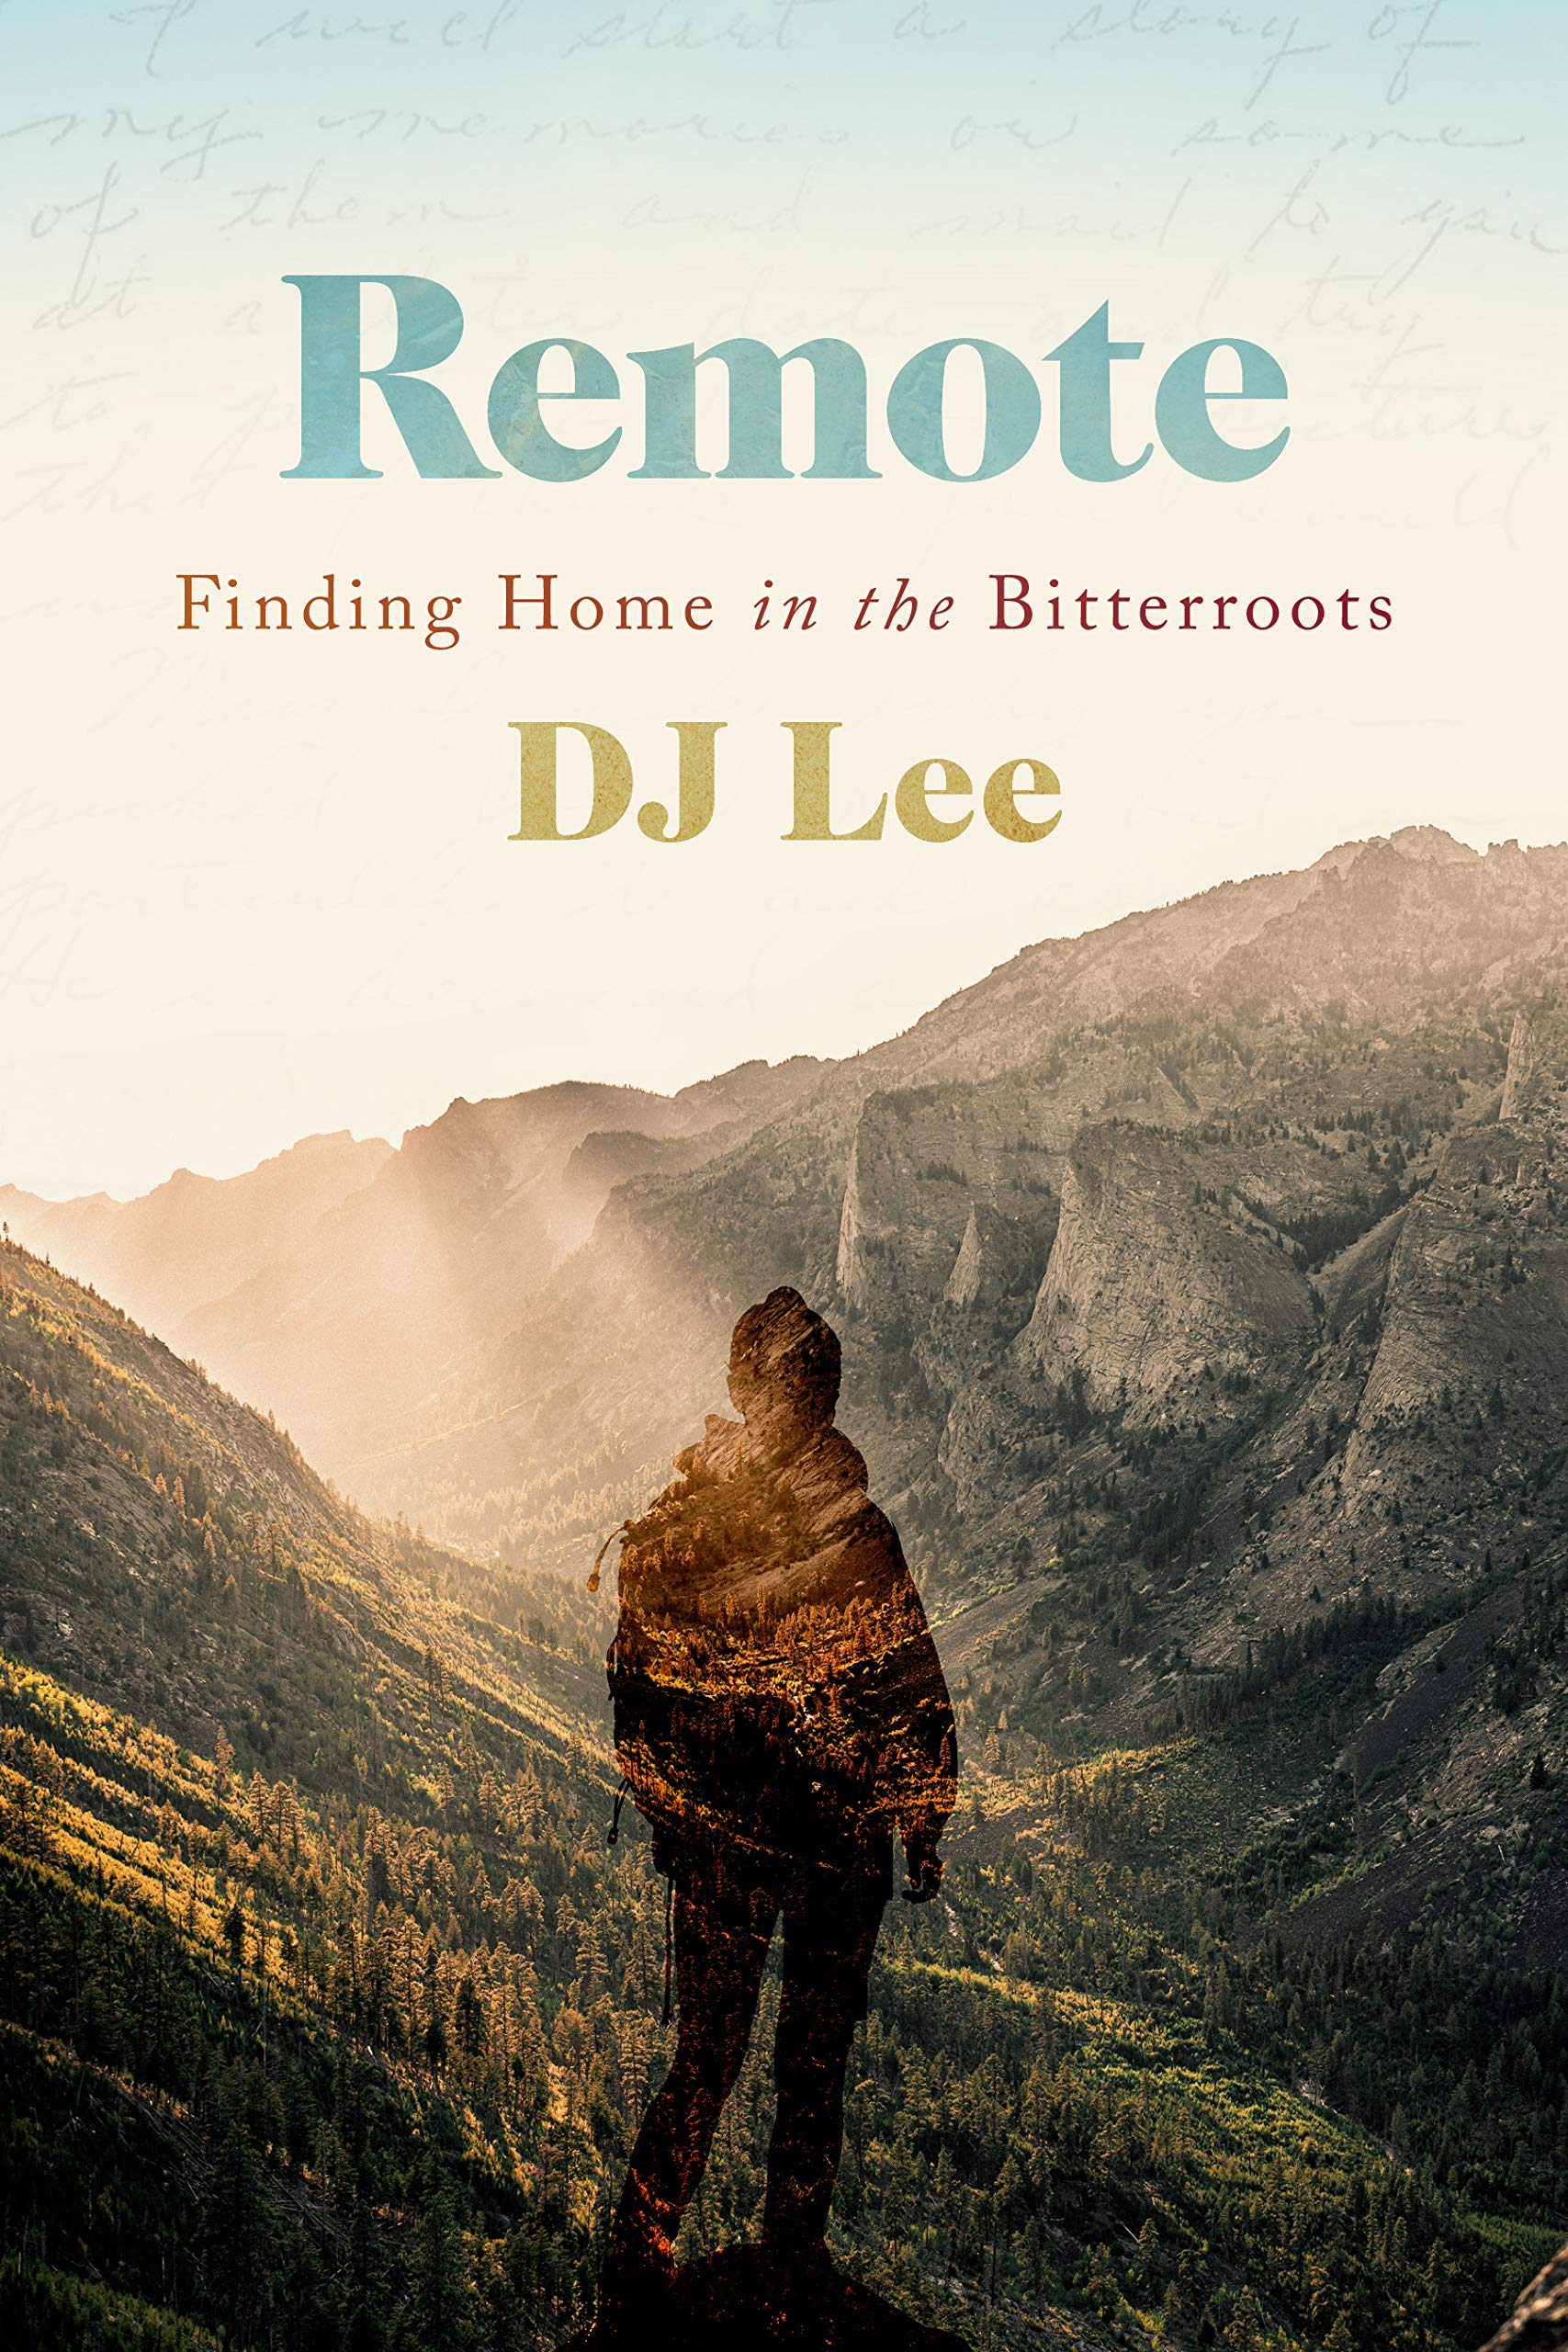 Remote: Finding Home within the Bitterroots